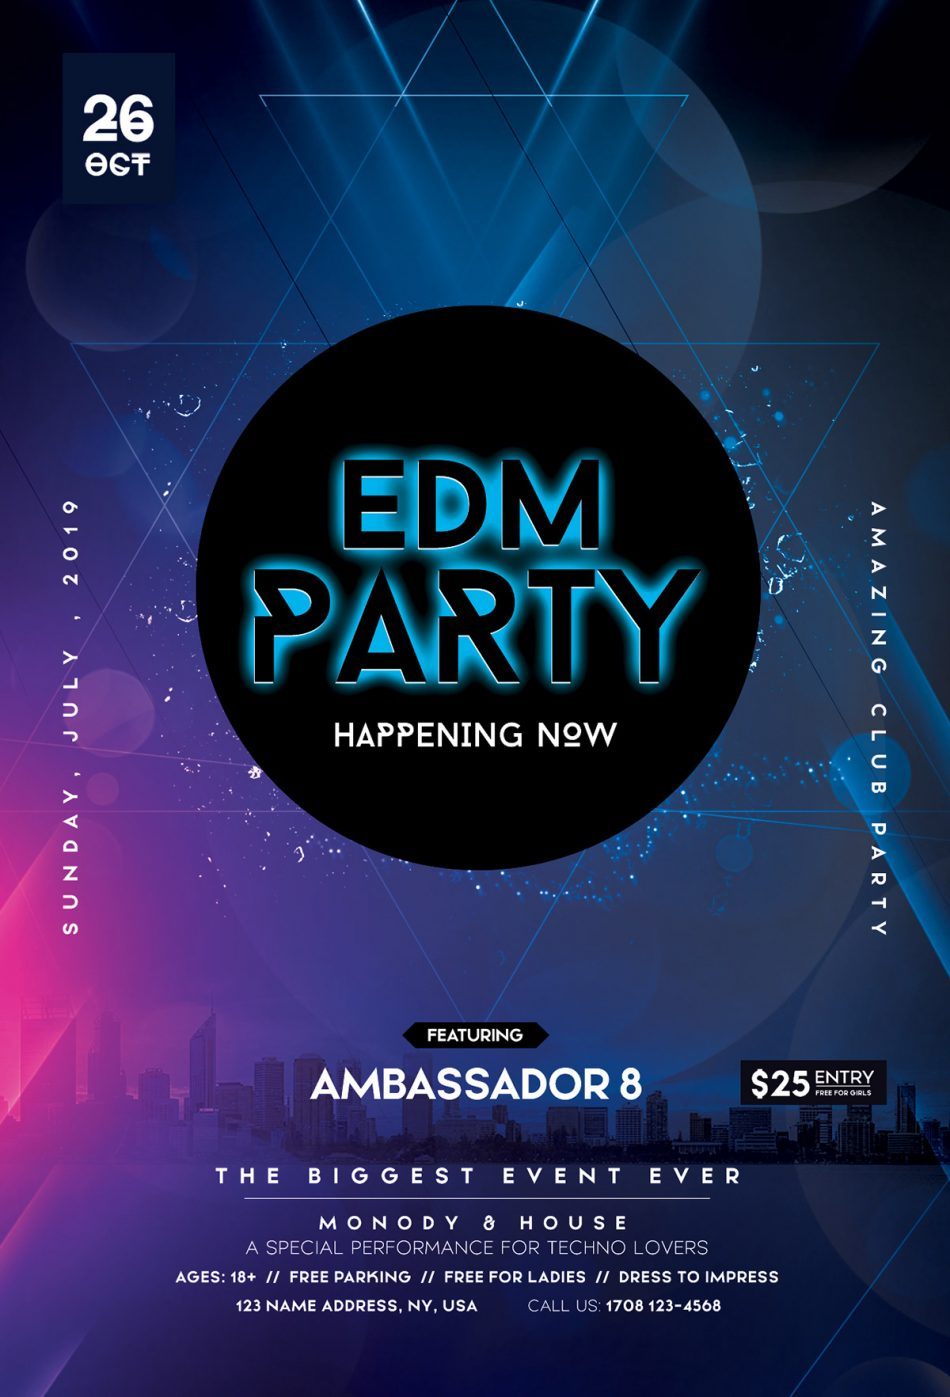 EDM DJ Party – Free PSD Flyer Template for Events